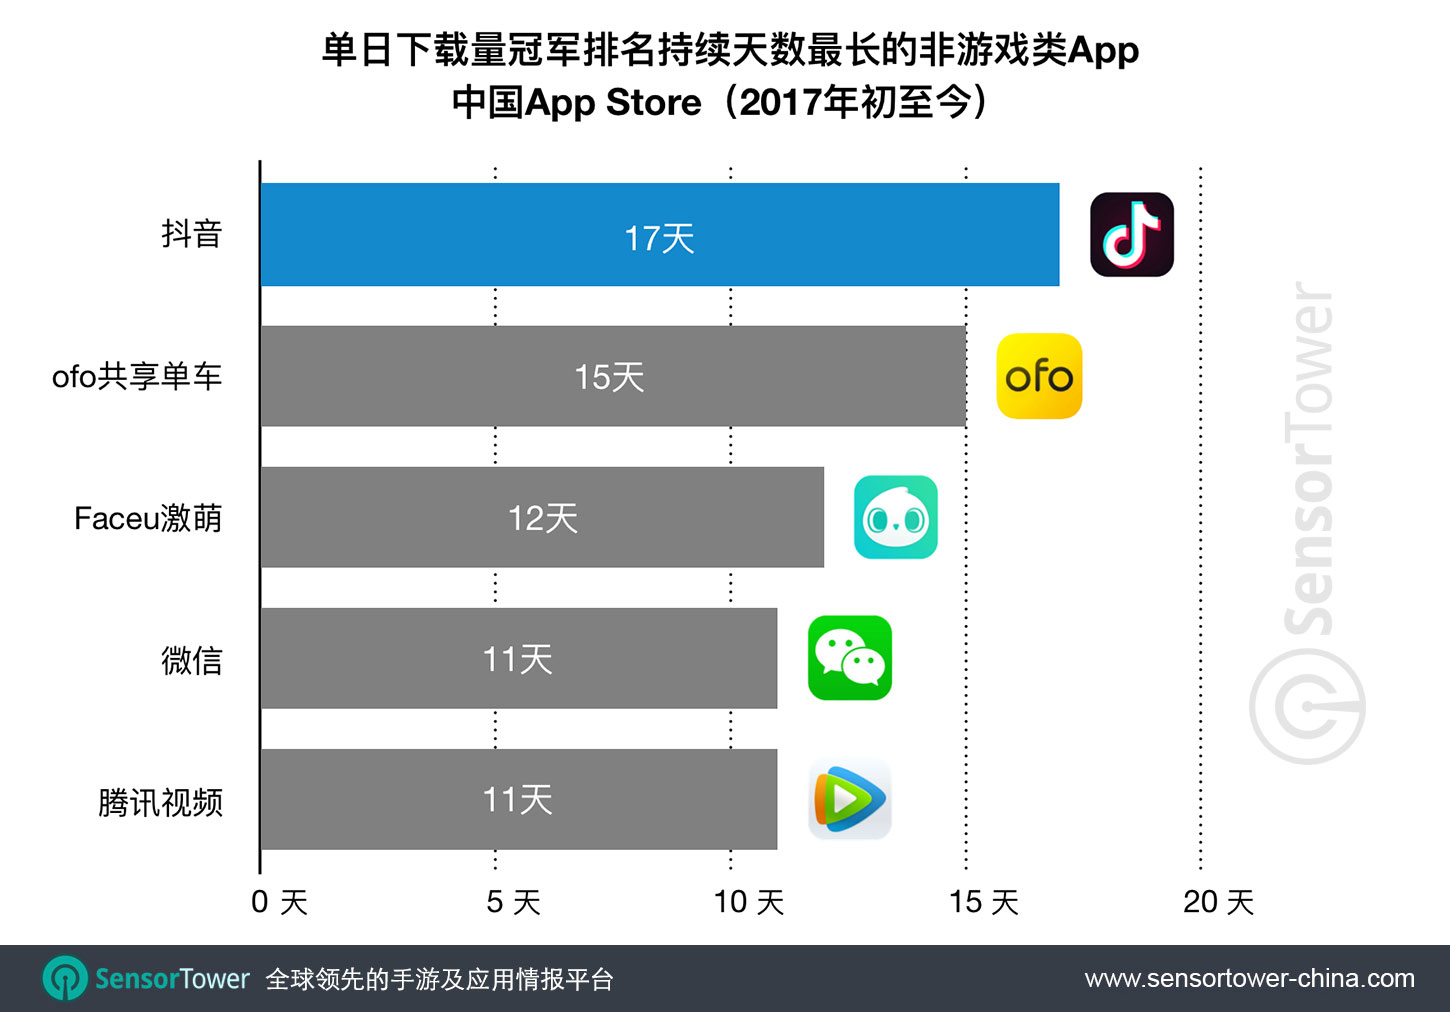 Non-Game Apps that Reached No. 1 on CN App Store for the Most Number of Days Consecutively